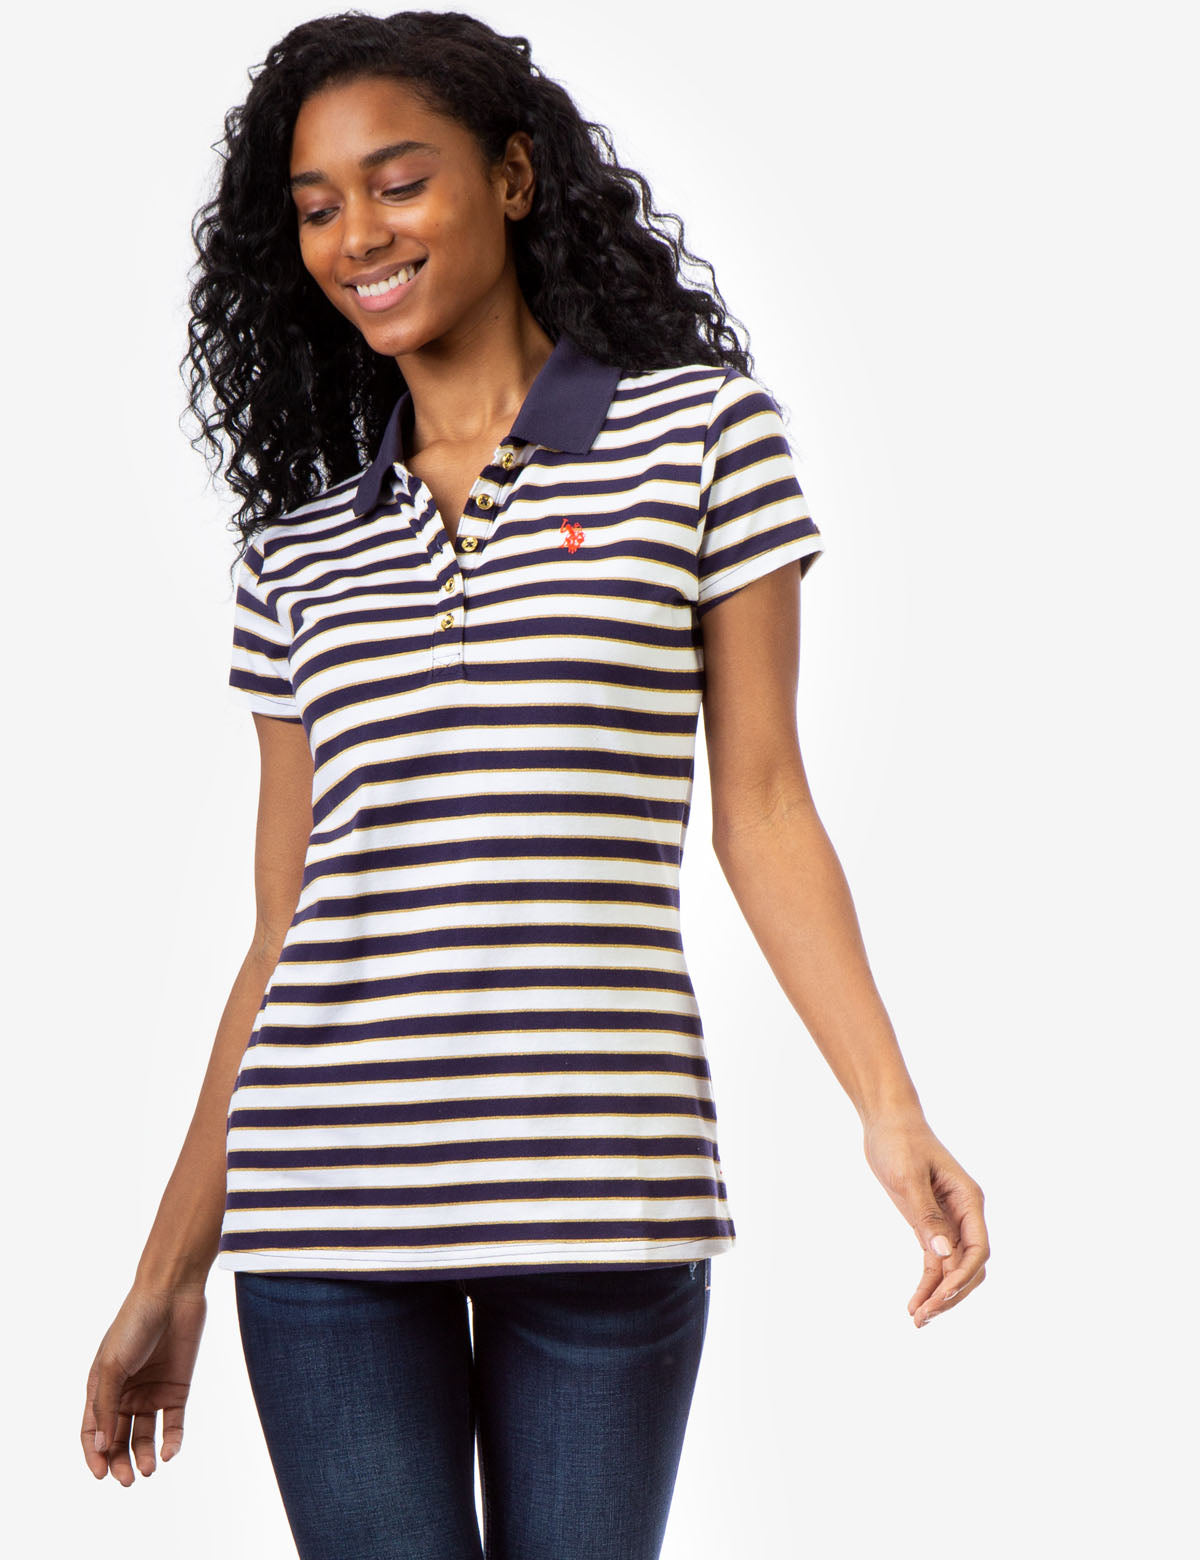 STRIPE LUREX POLO SHIRT - U.S. Polo Assn.